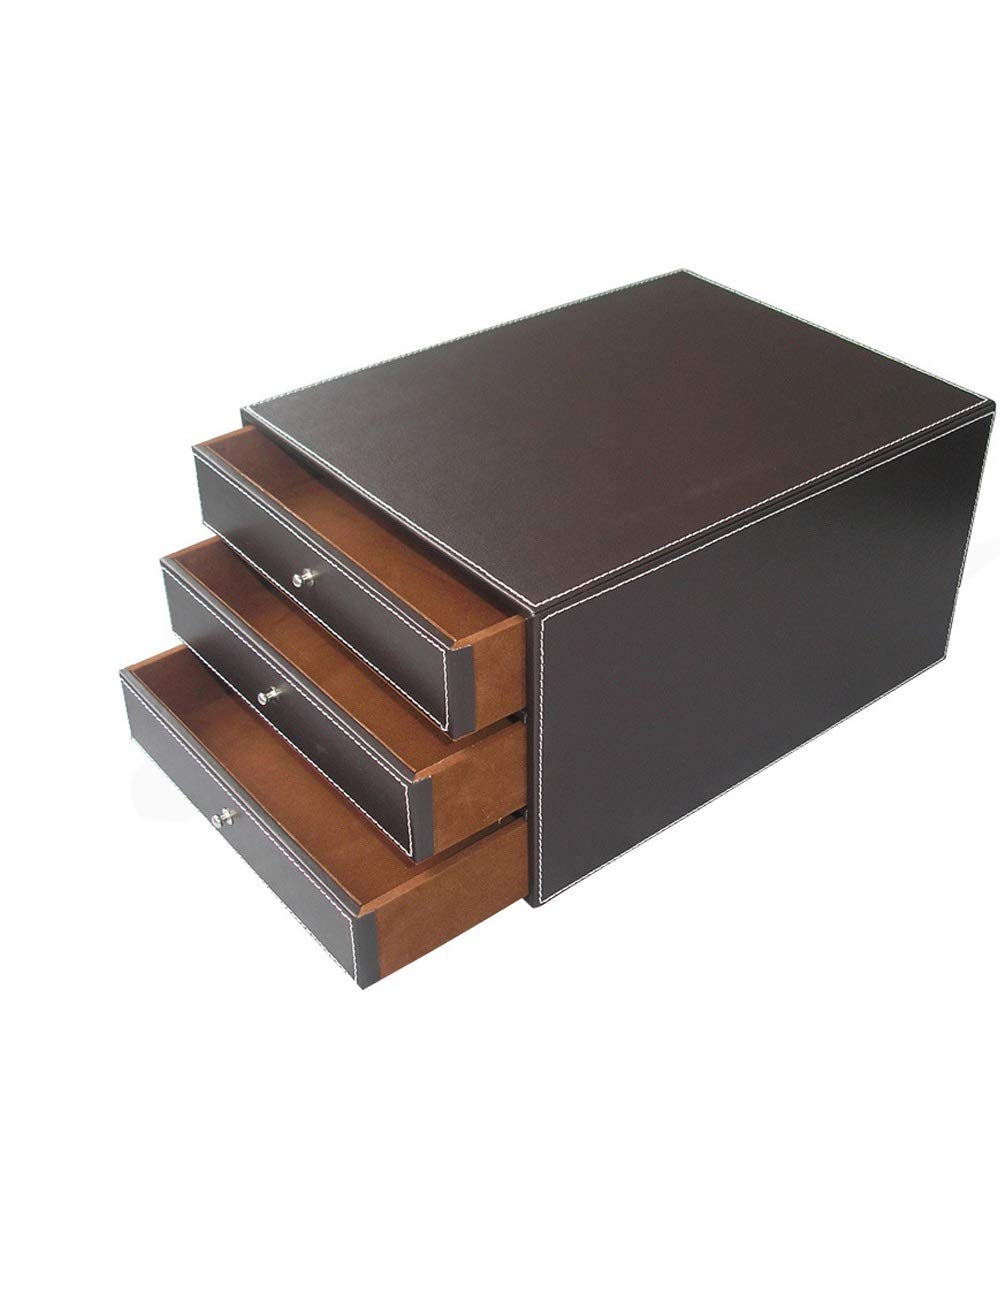 File Cabinets Office Organizer File Holder A4 Plastic Data Cabinet Locker Drawer Desktop Cabinet File Storage Cabinet Storage Box (Design: 3 Drawers) Home Office Furniture (Color : B) by File Cabinets